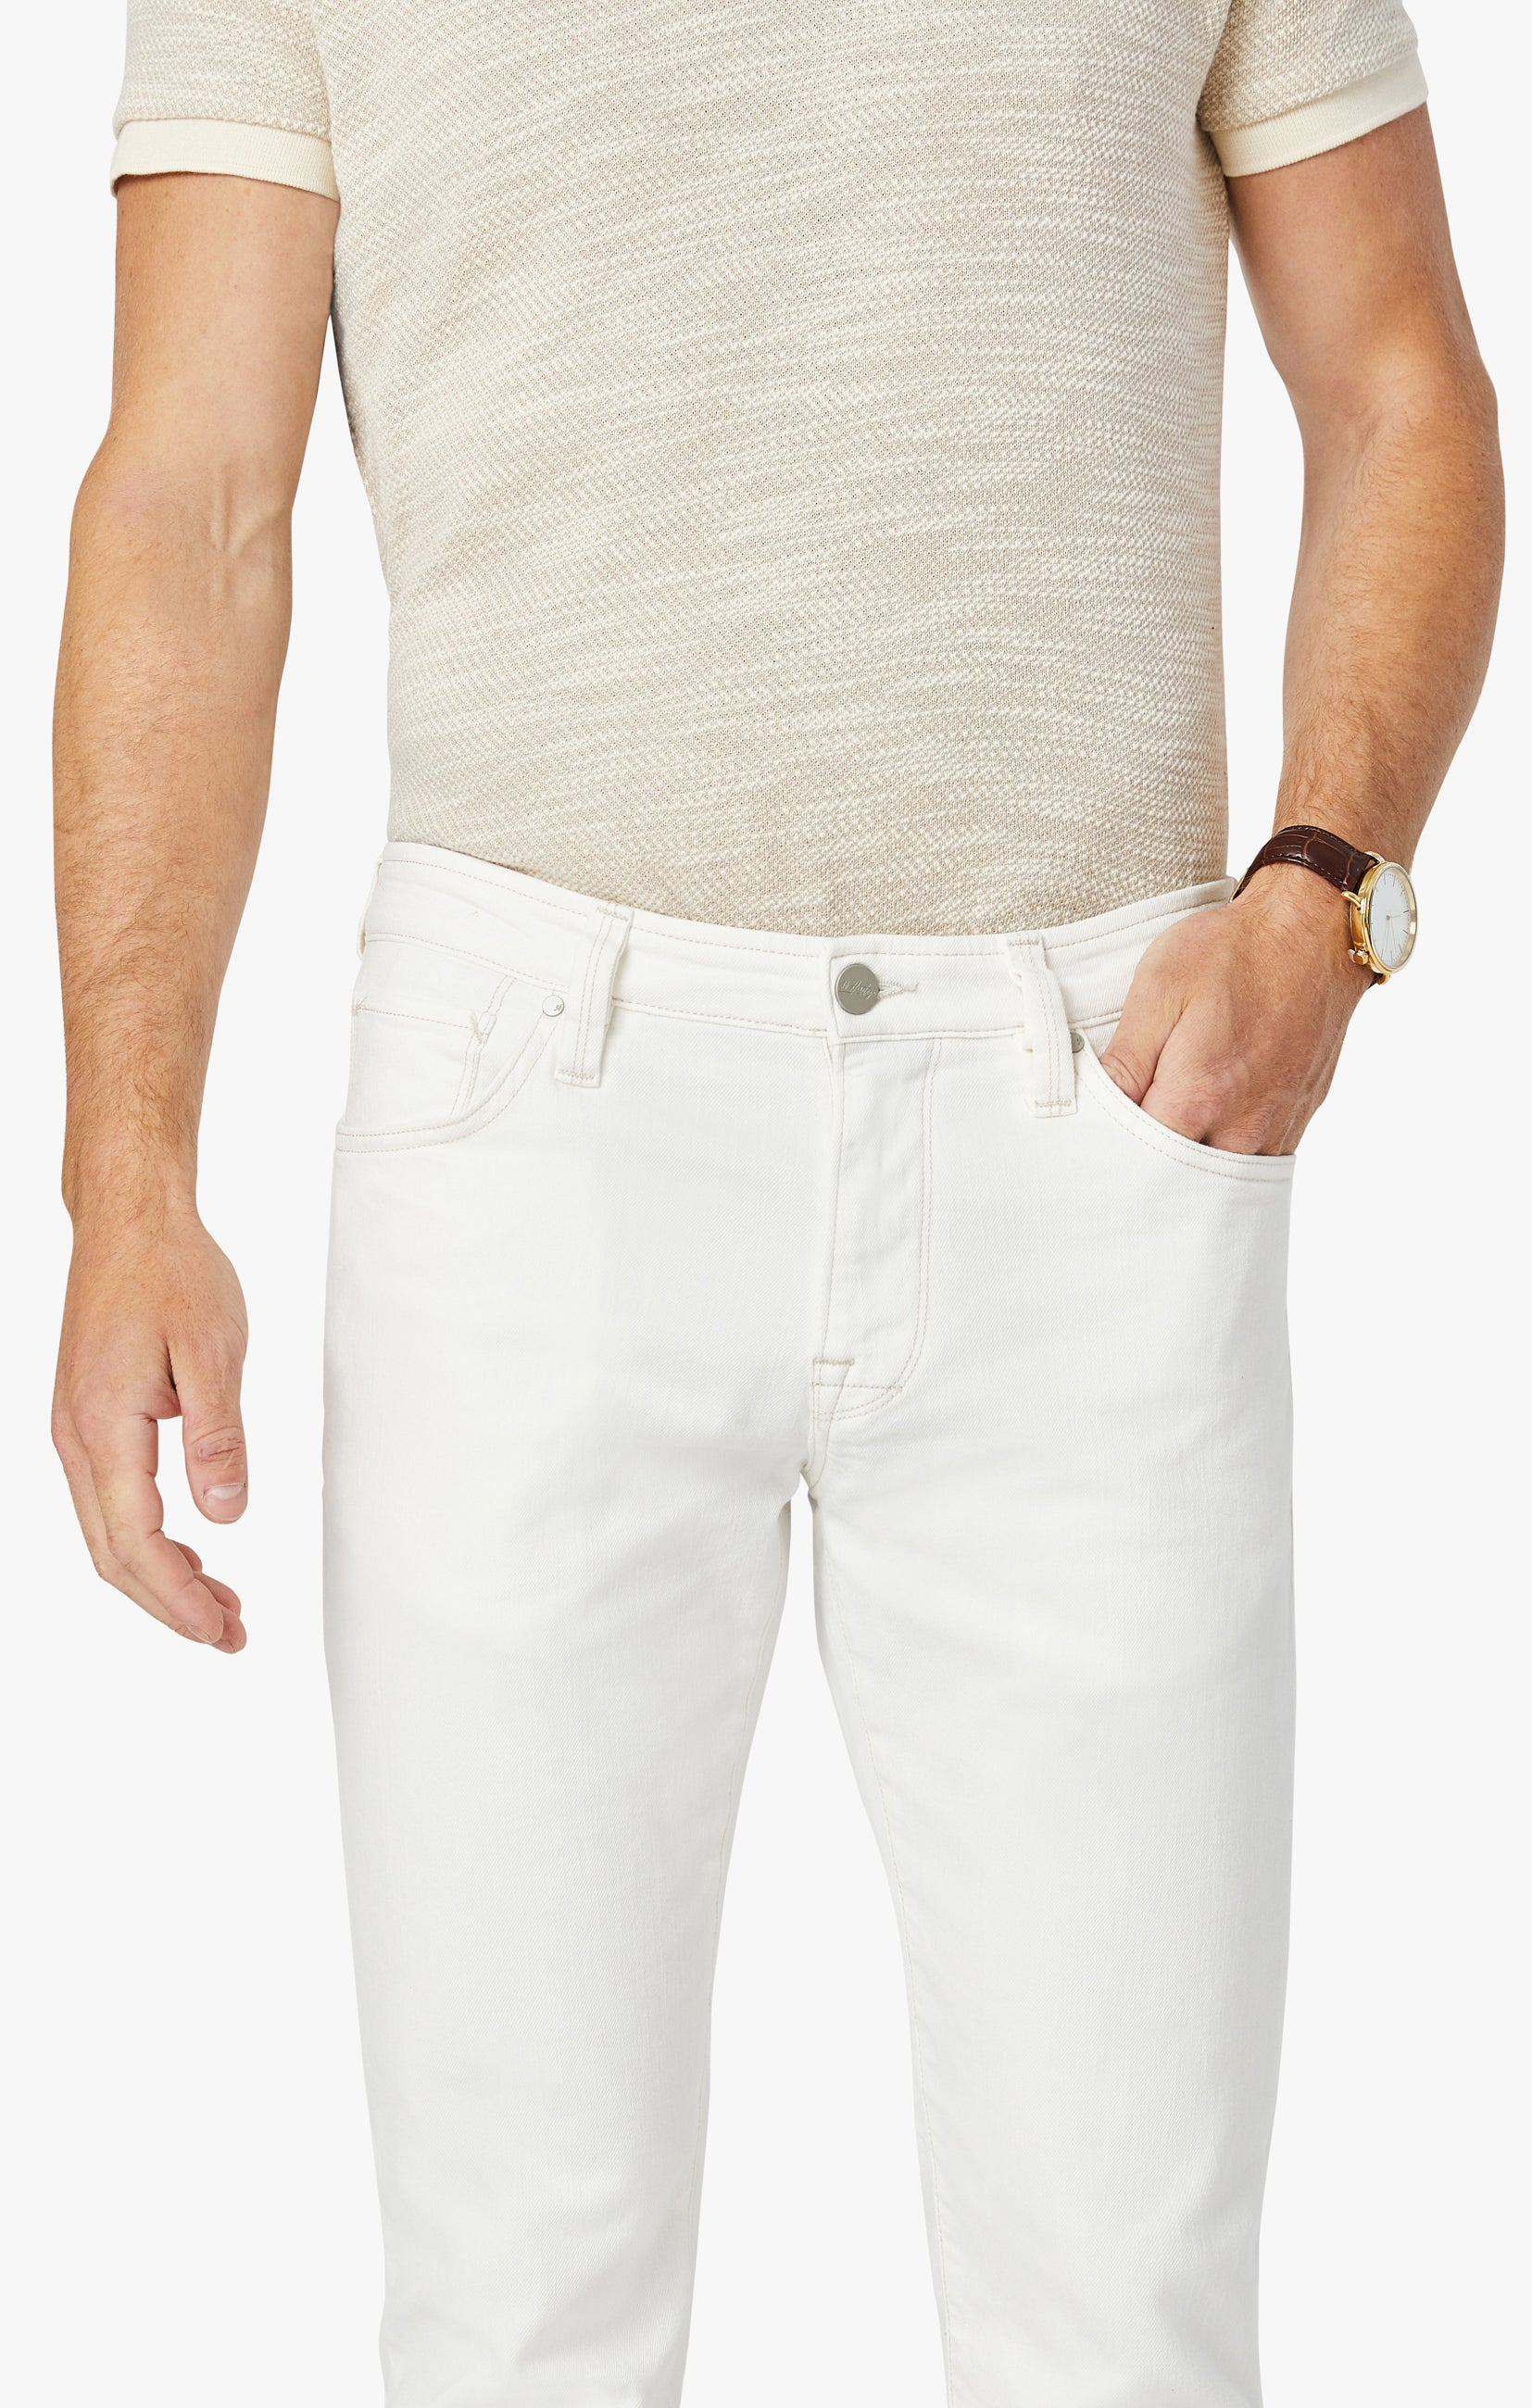 Courage Straight Leg Jeans in White Denim Image 8